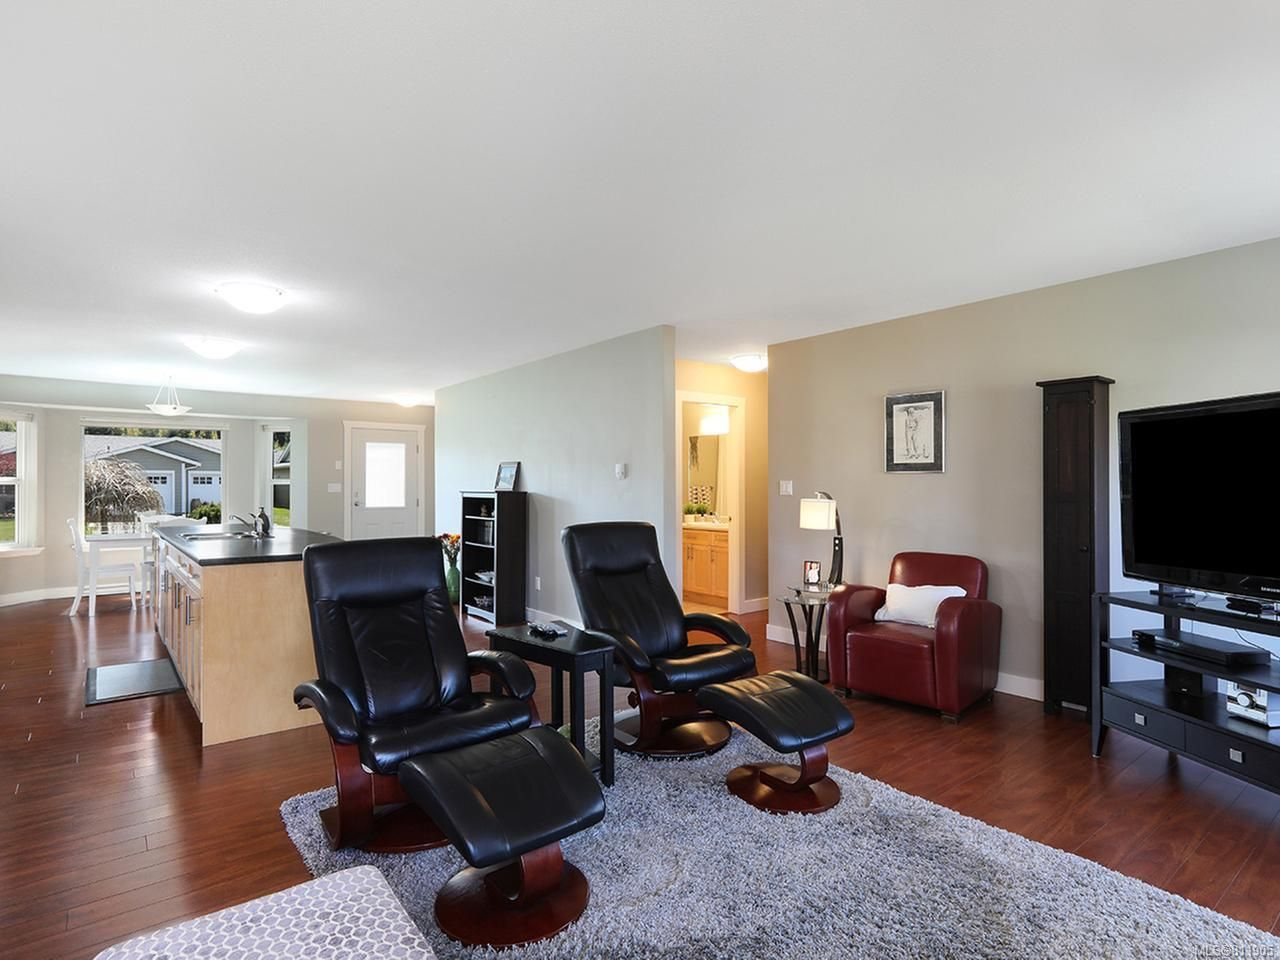 Photo 13: Photos: 50 Carolina Dr in CAMPBELL RIVER: CR Willow Point House for sale (Campbell River)  : MLS®# 811905